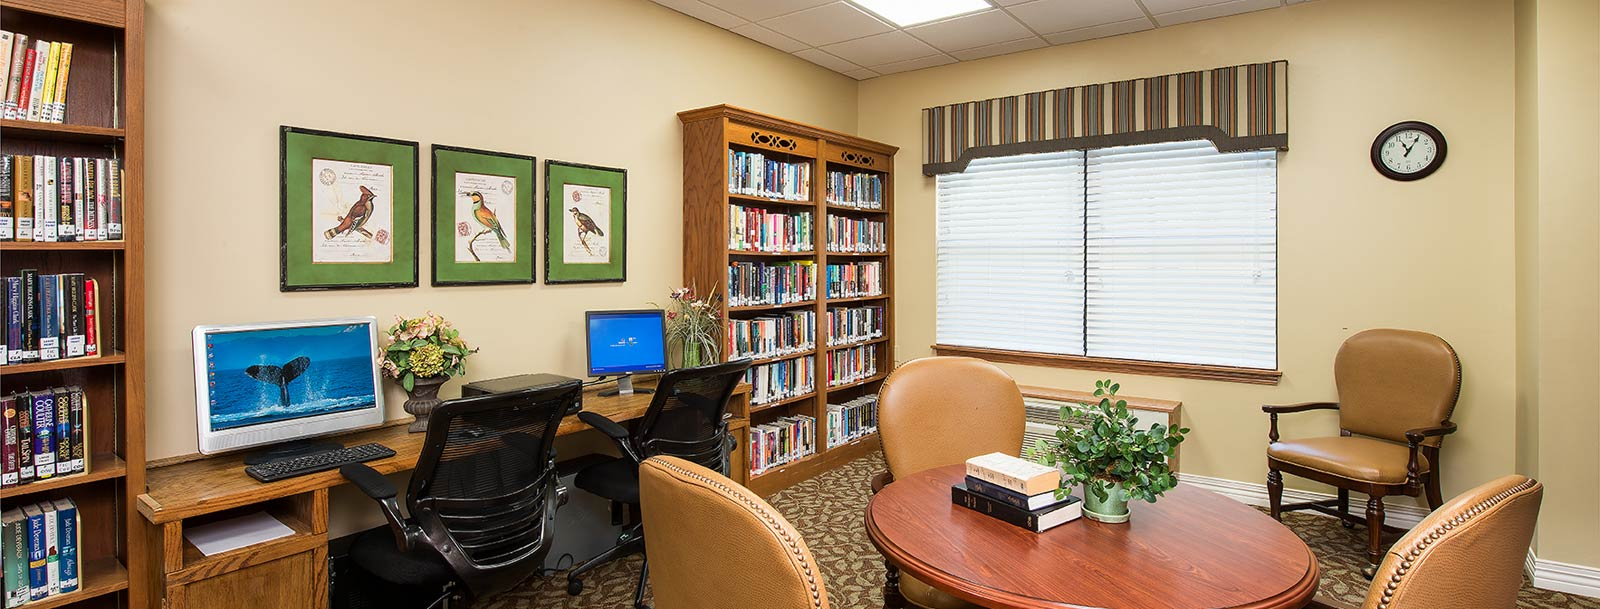 Residents enjoying the library at the senior living in Arkansas City